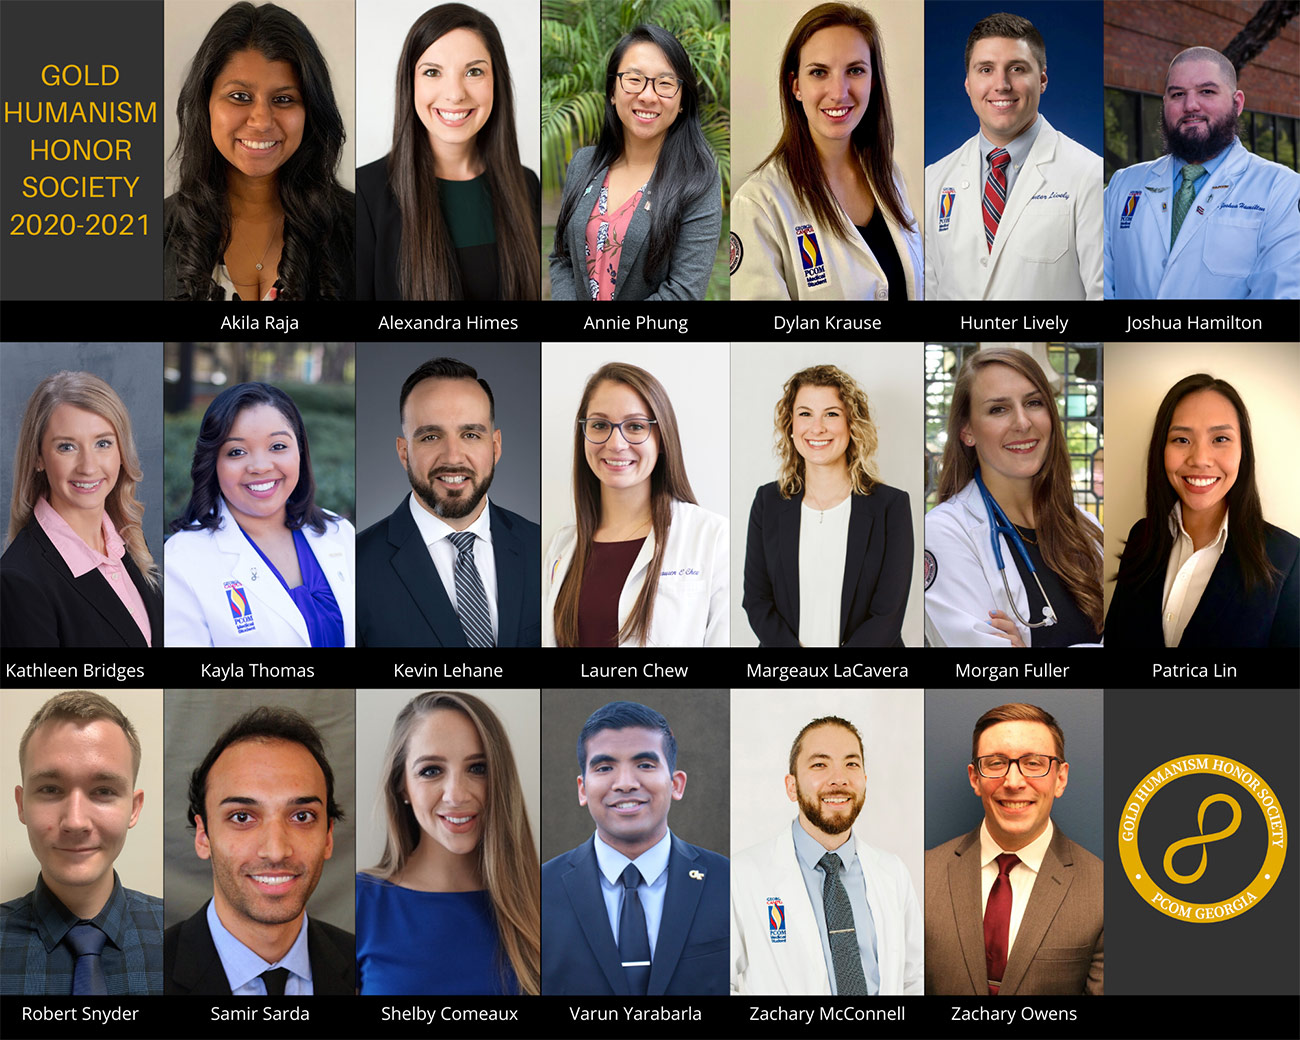 Composite image of headshot photos of PCOM Georgia medical students inducted into the Gold Humanism Honor Society